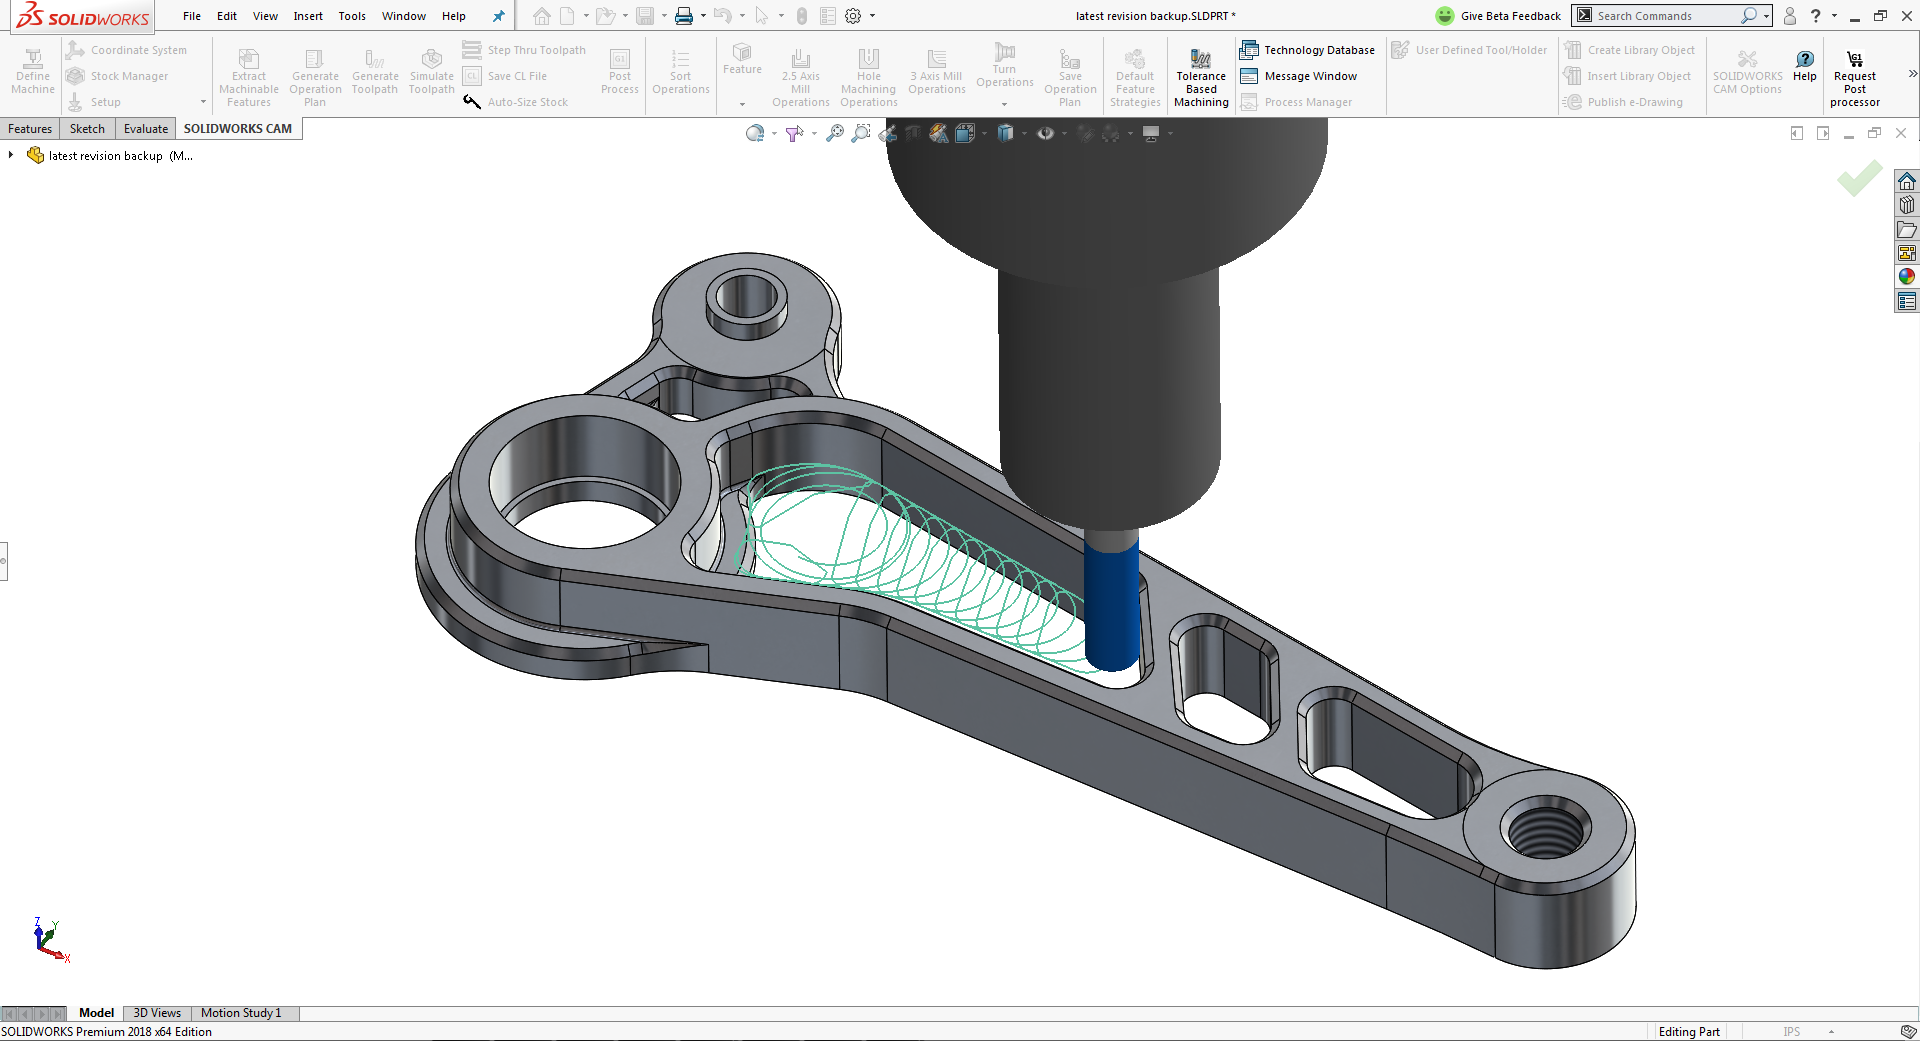 SolidWorks na Engenharia